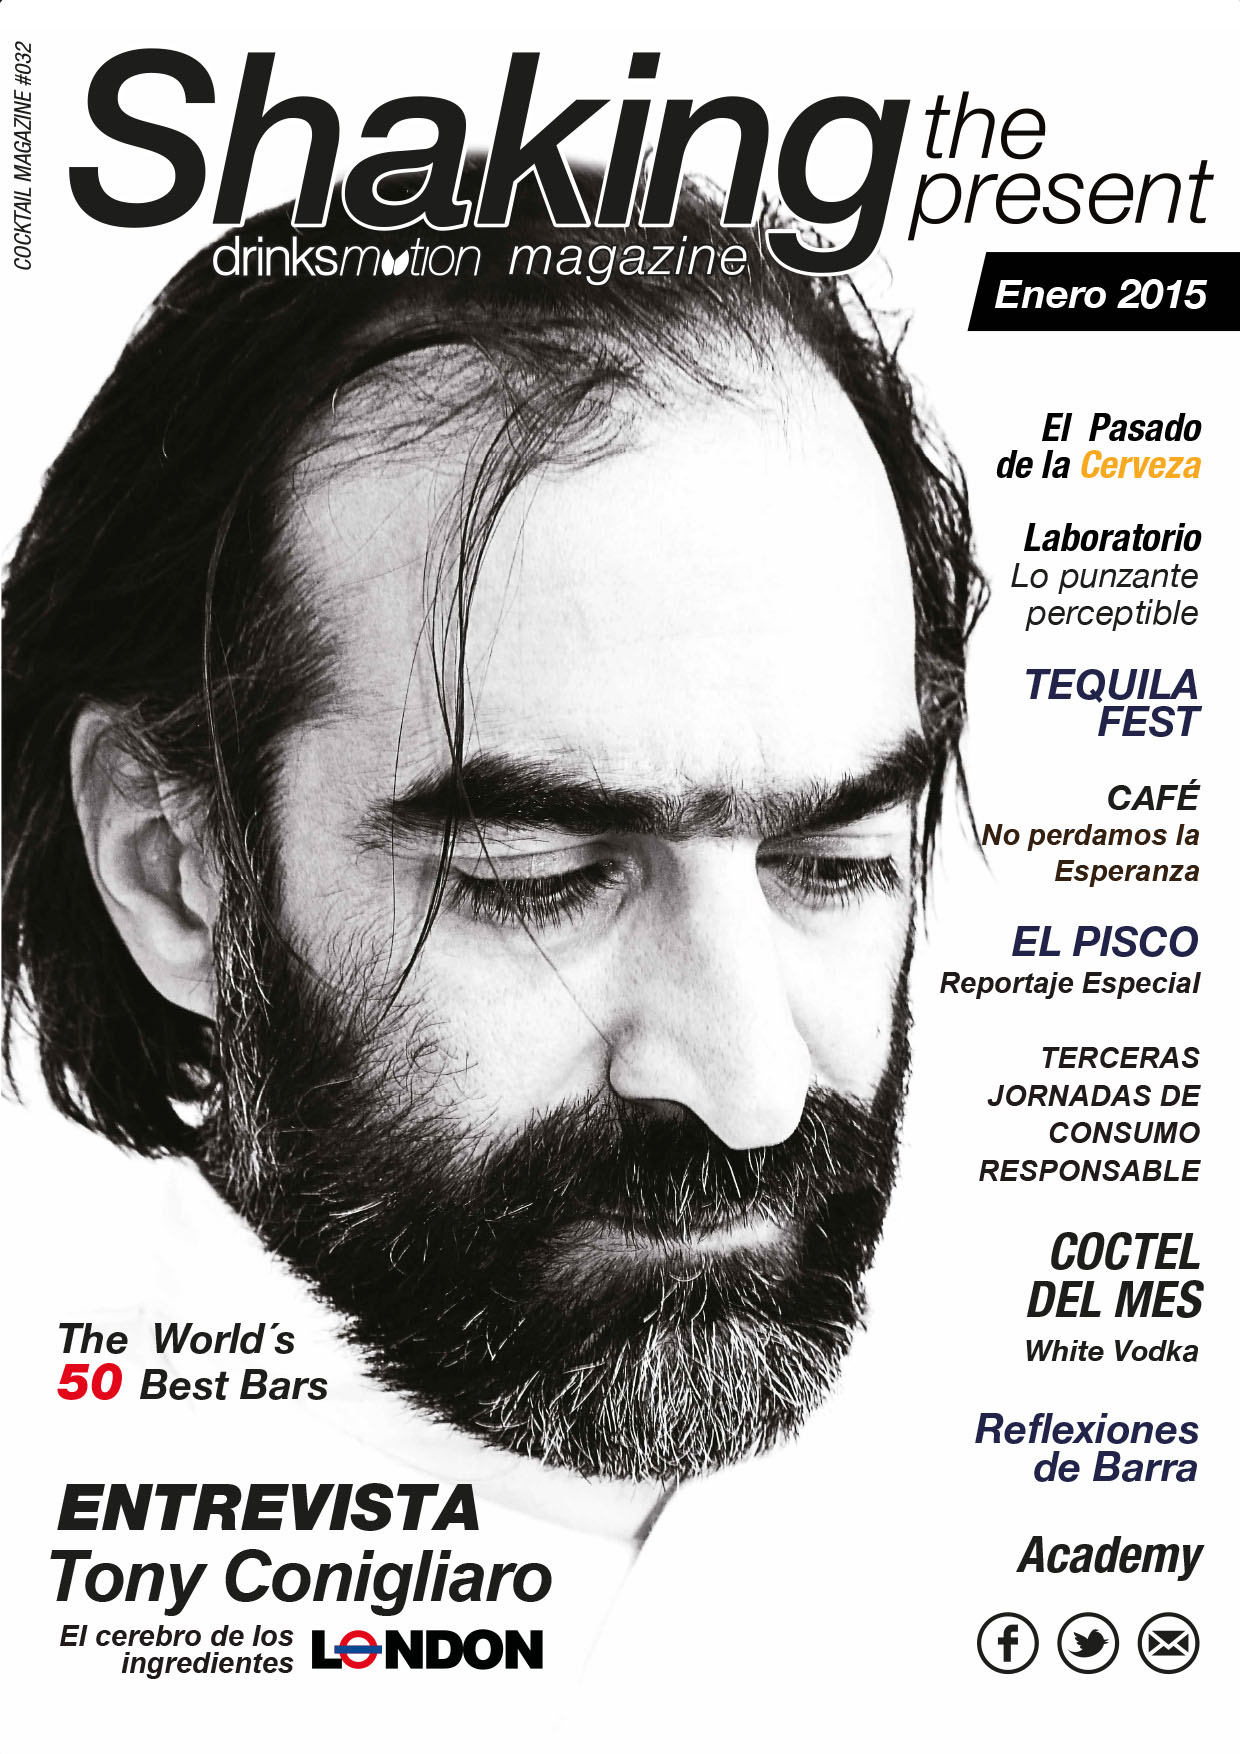 Magazine #21 Enero 2015 – Tony Conigliaro